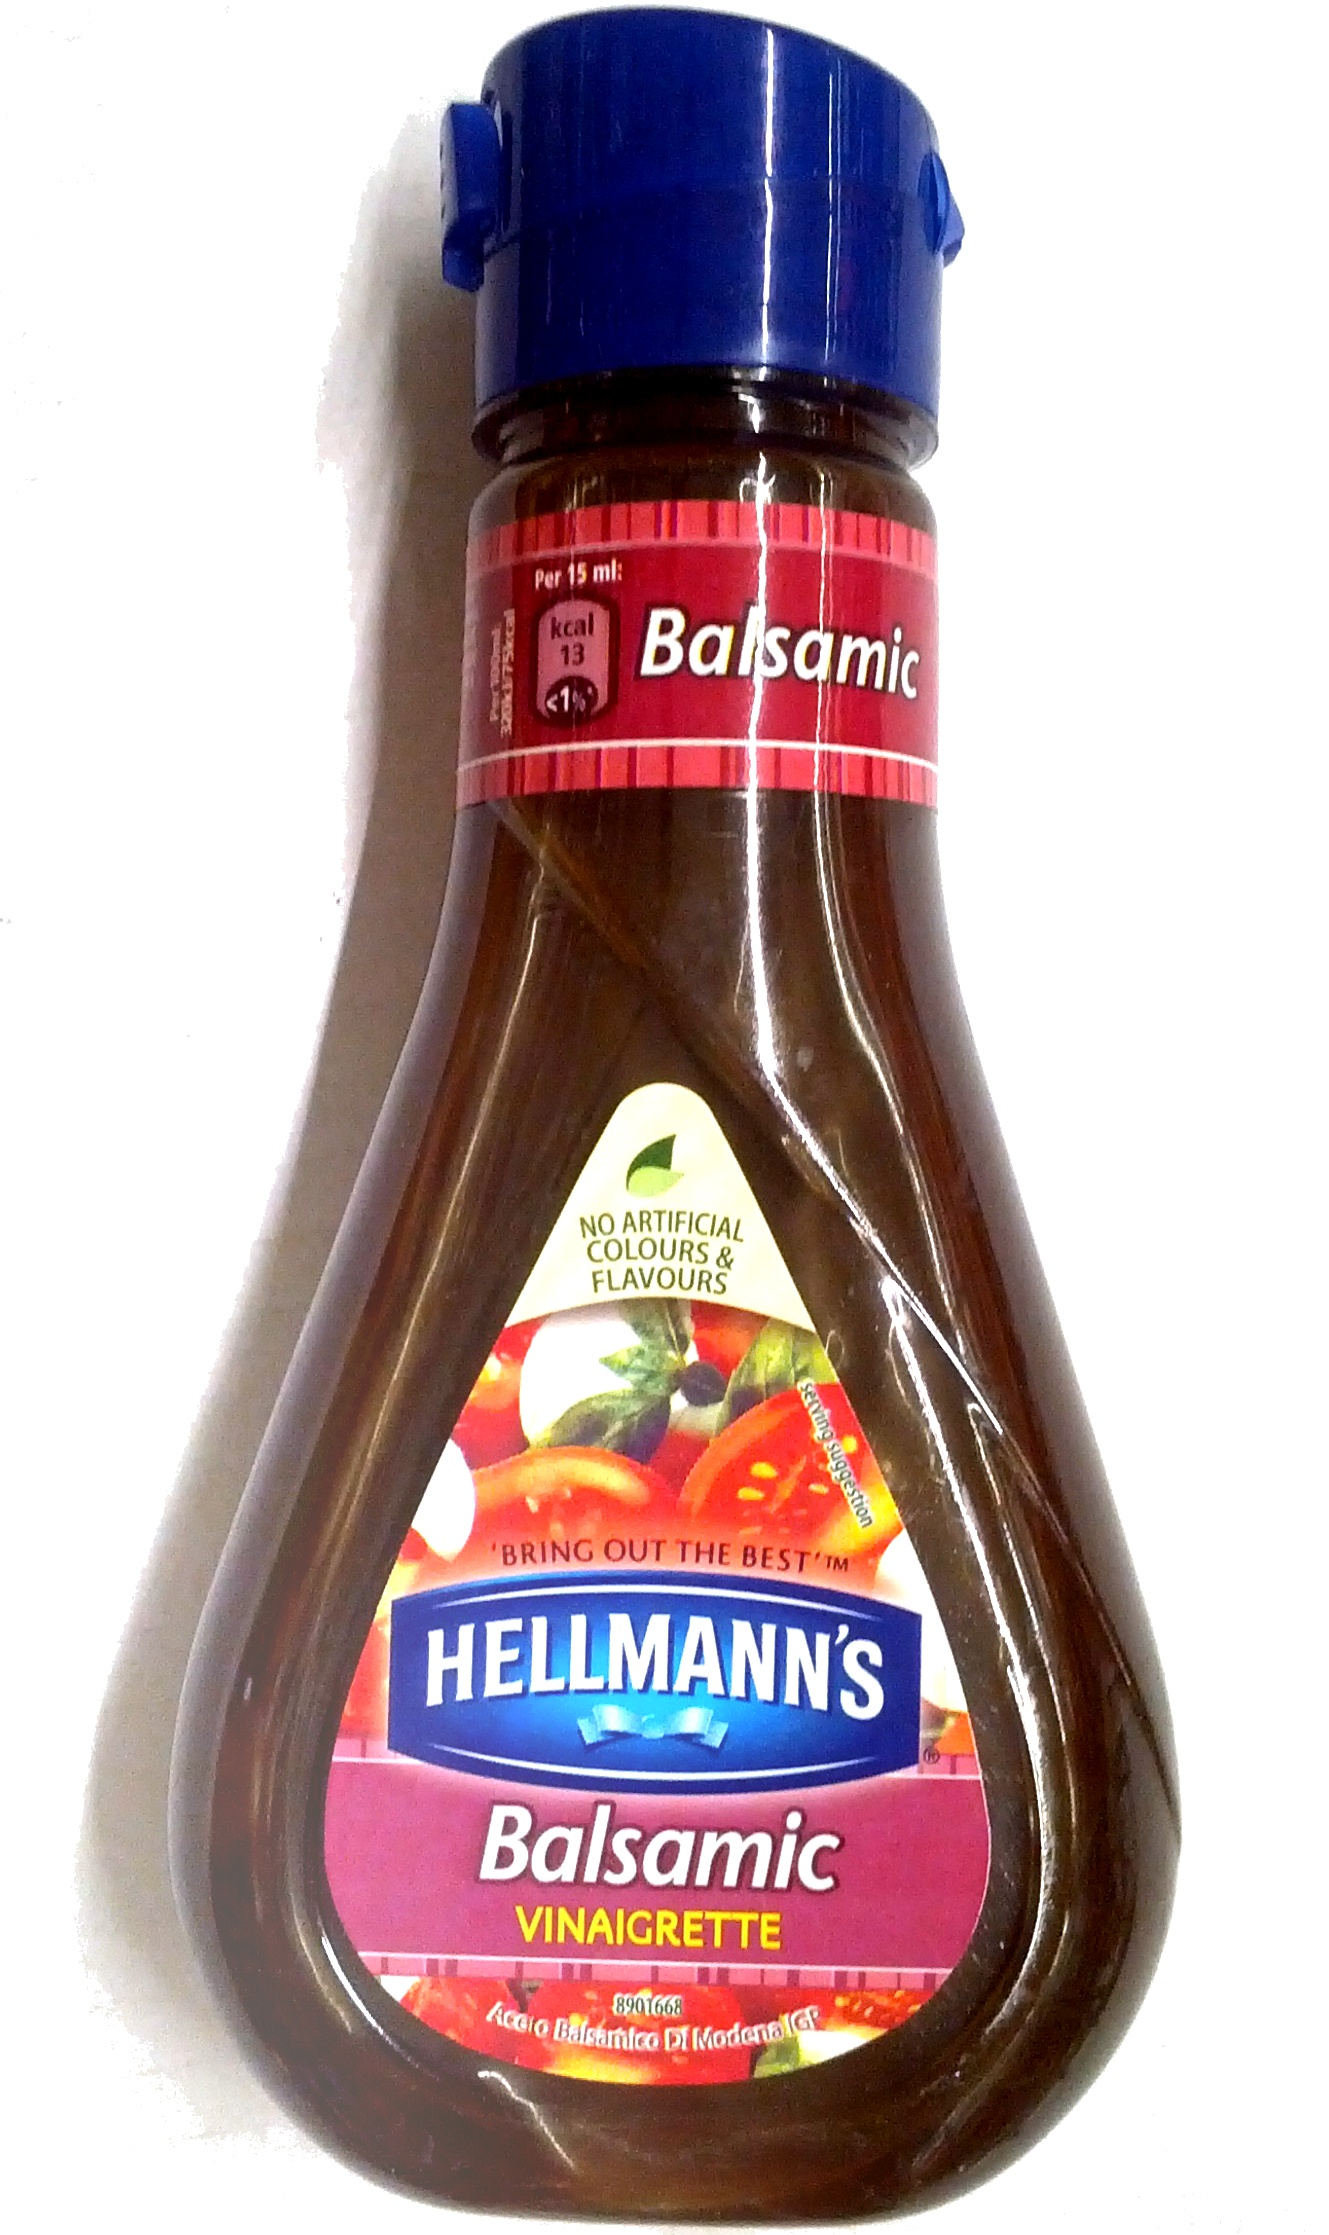 Balsamic Vinaigrette - Product